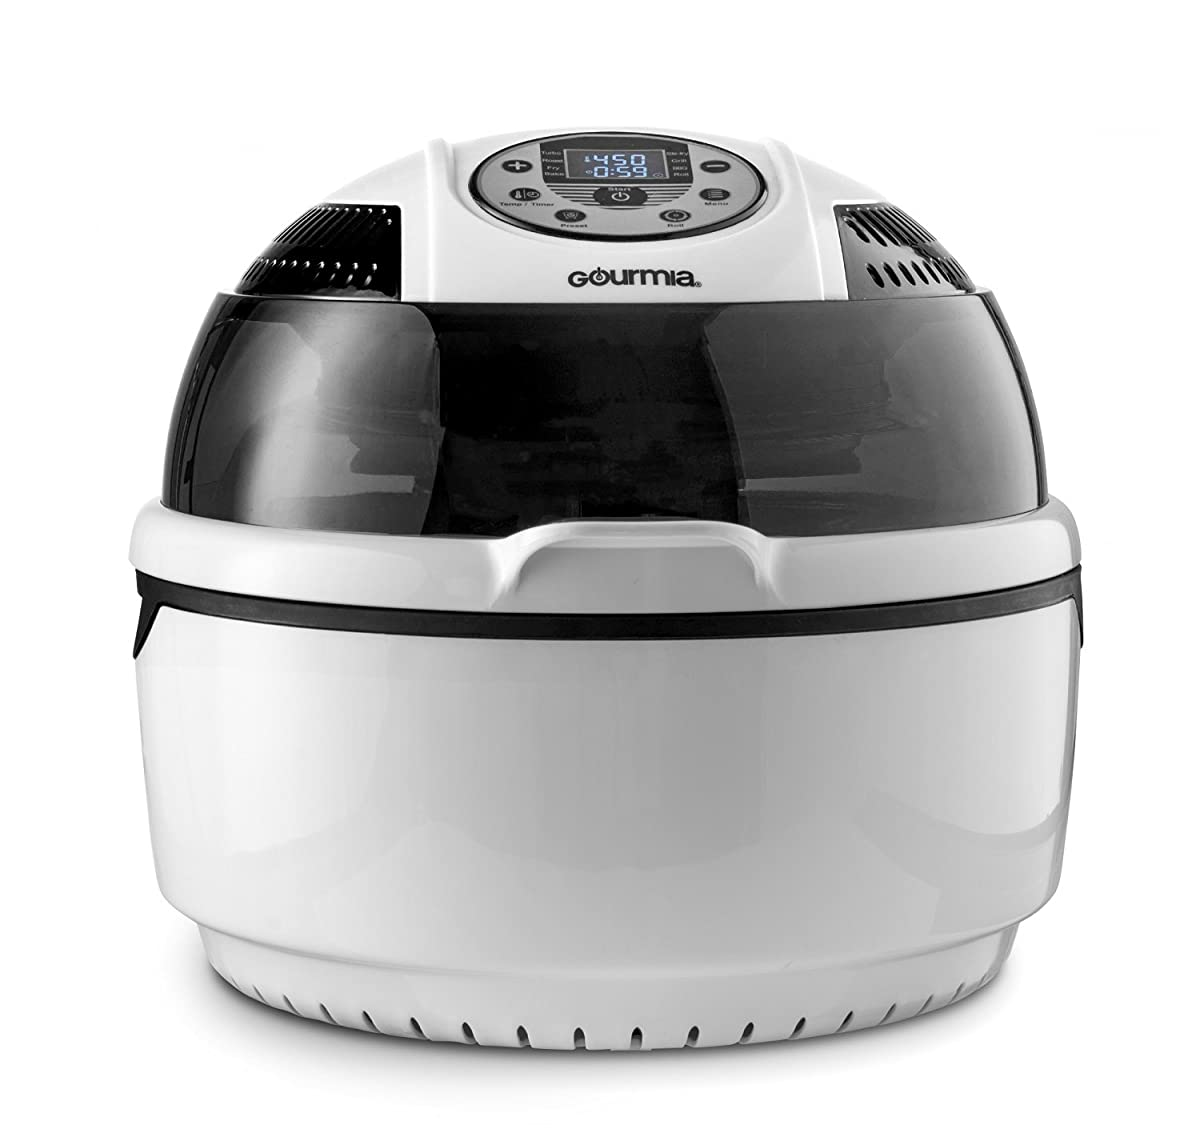 Gourmia GTA1500 Digital Electric Air Fryer, Griller and Roaster with Calorie Reducer Technology, Free Recipe Book Included